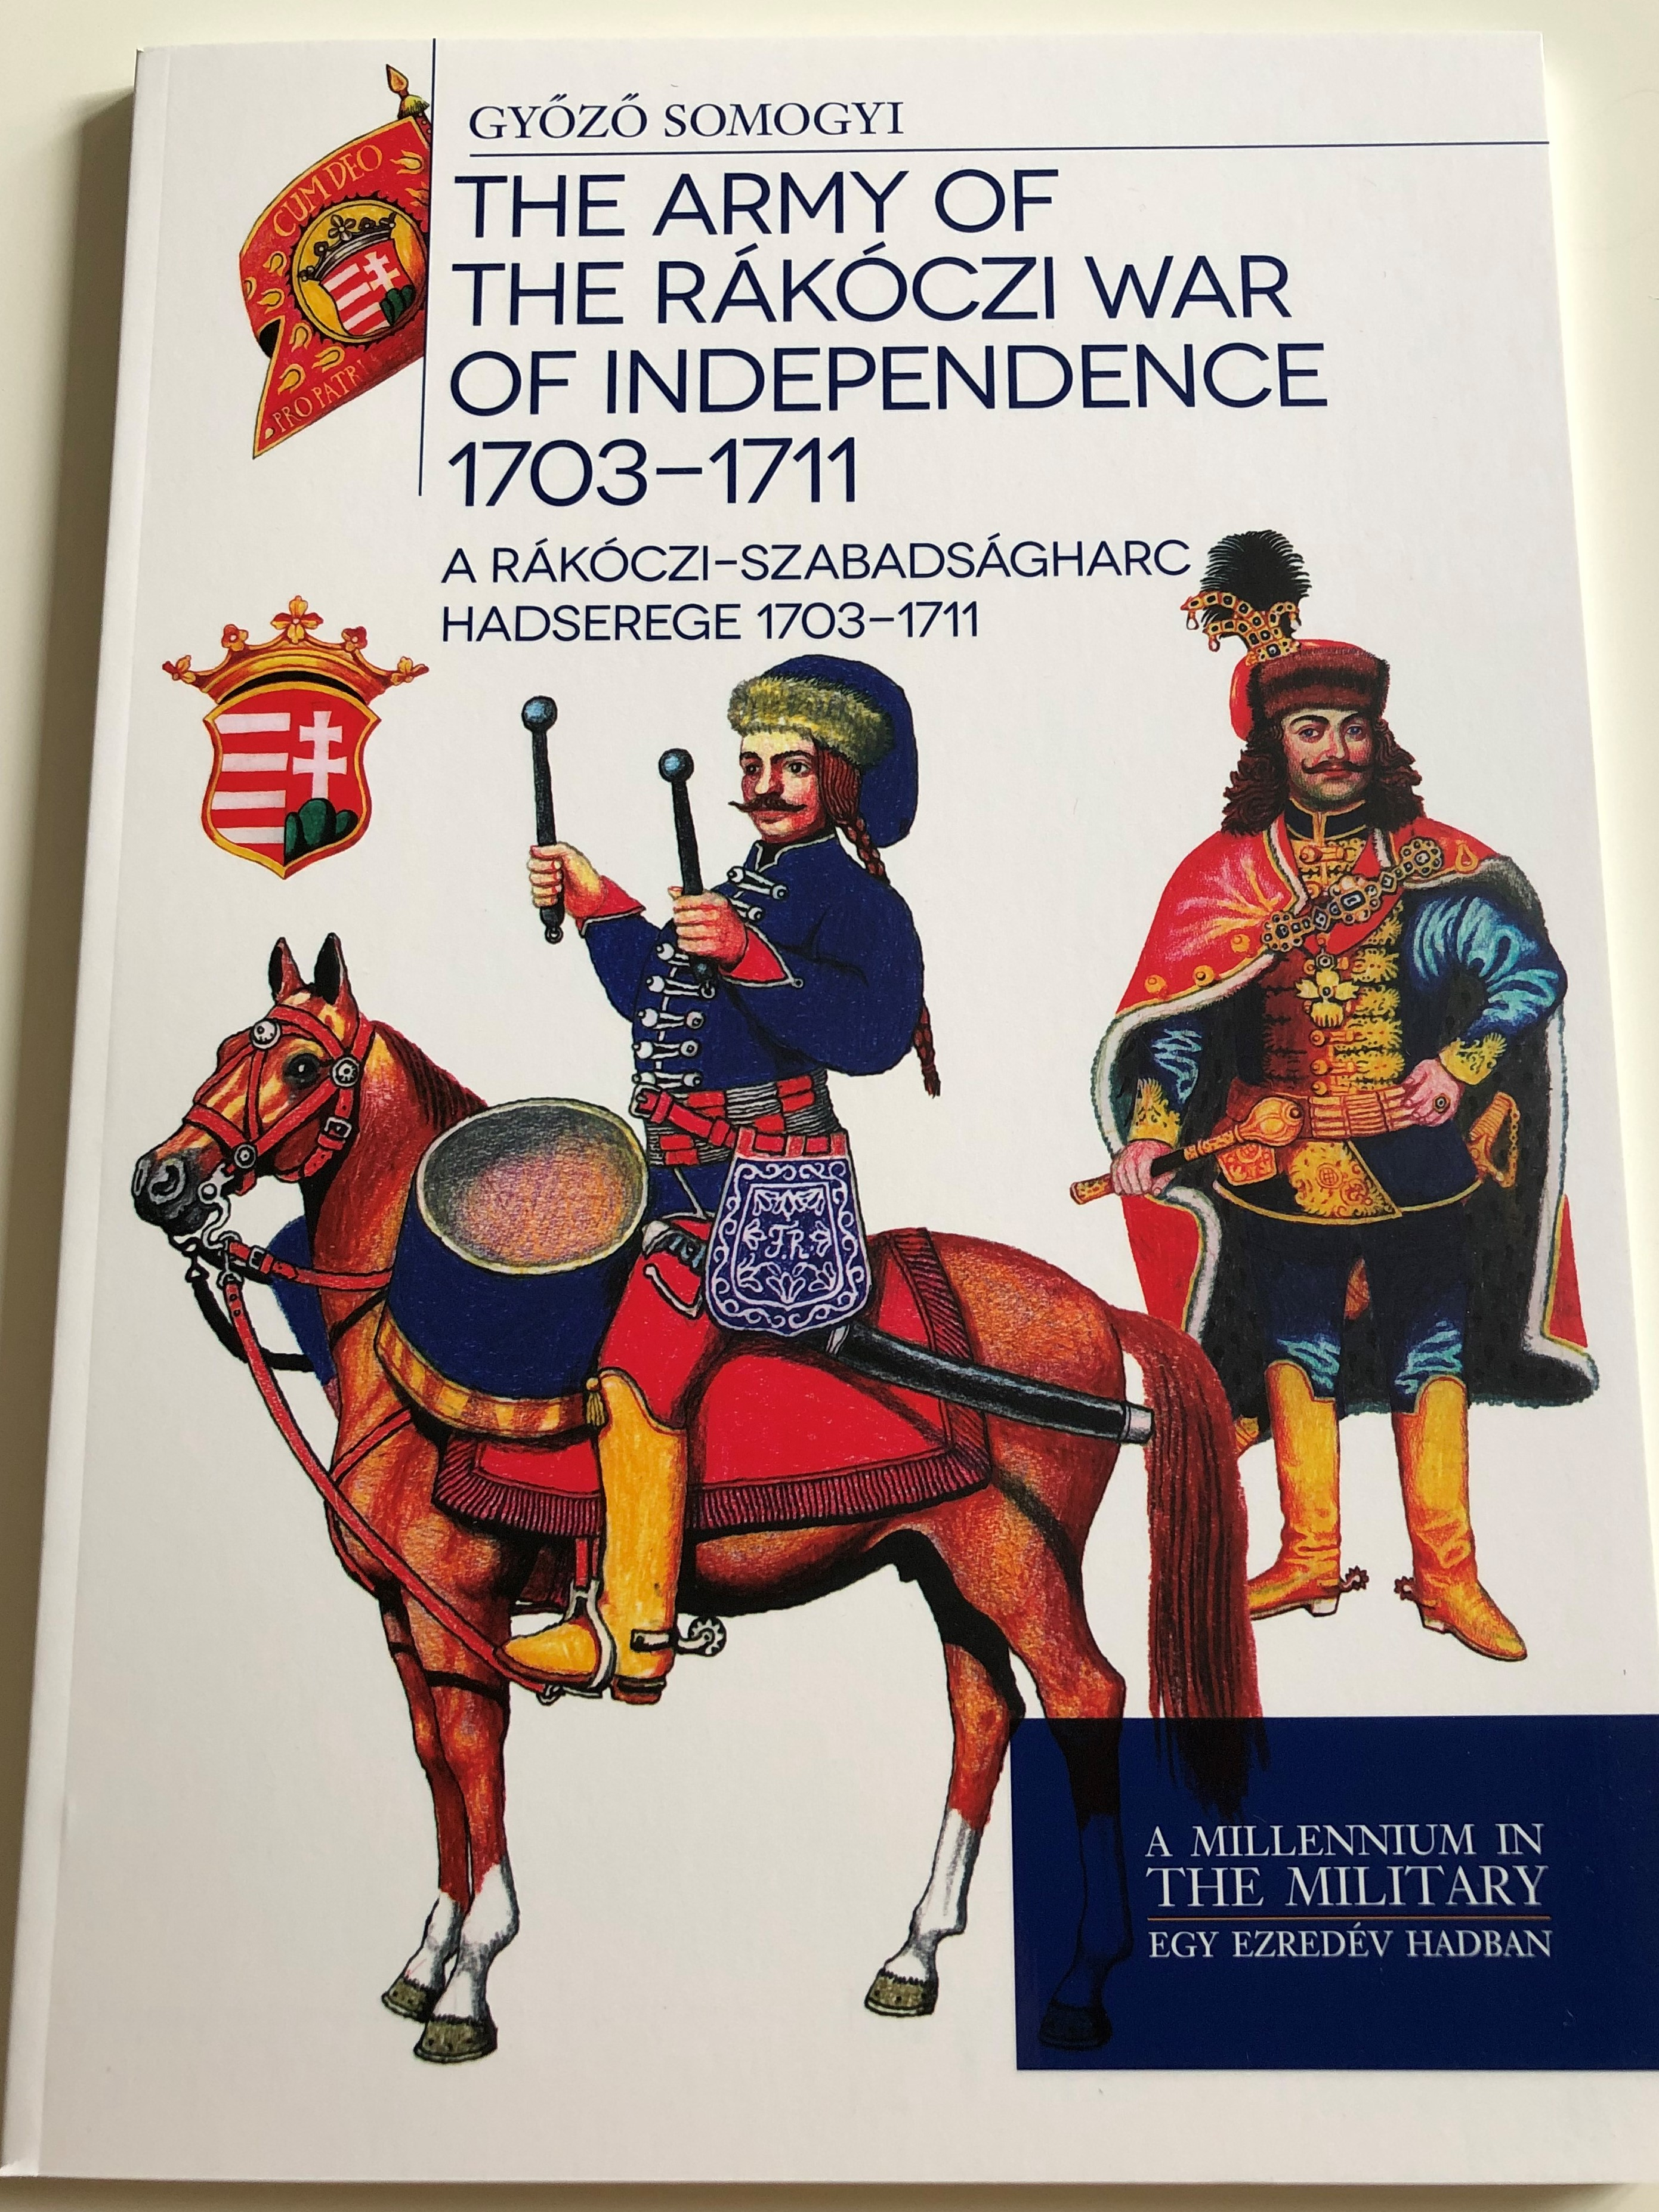 the-army-of-the-r-k-czi-war-of-independence-1703-1711-by-gy-z-somogyi-a-r-k-czi-szabads-gharc-hadserege-1703-1711-a-millennium-in-the-military-egy-ezred-v-hadban-paperback-2018-hm-zr-nyi-1-.jpg